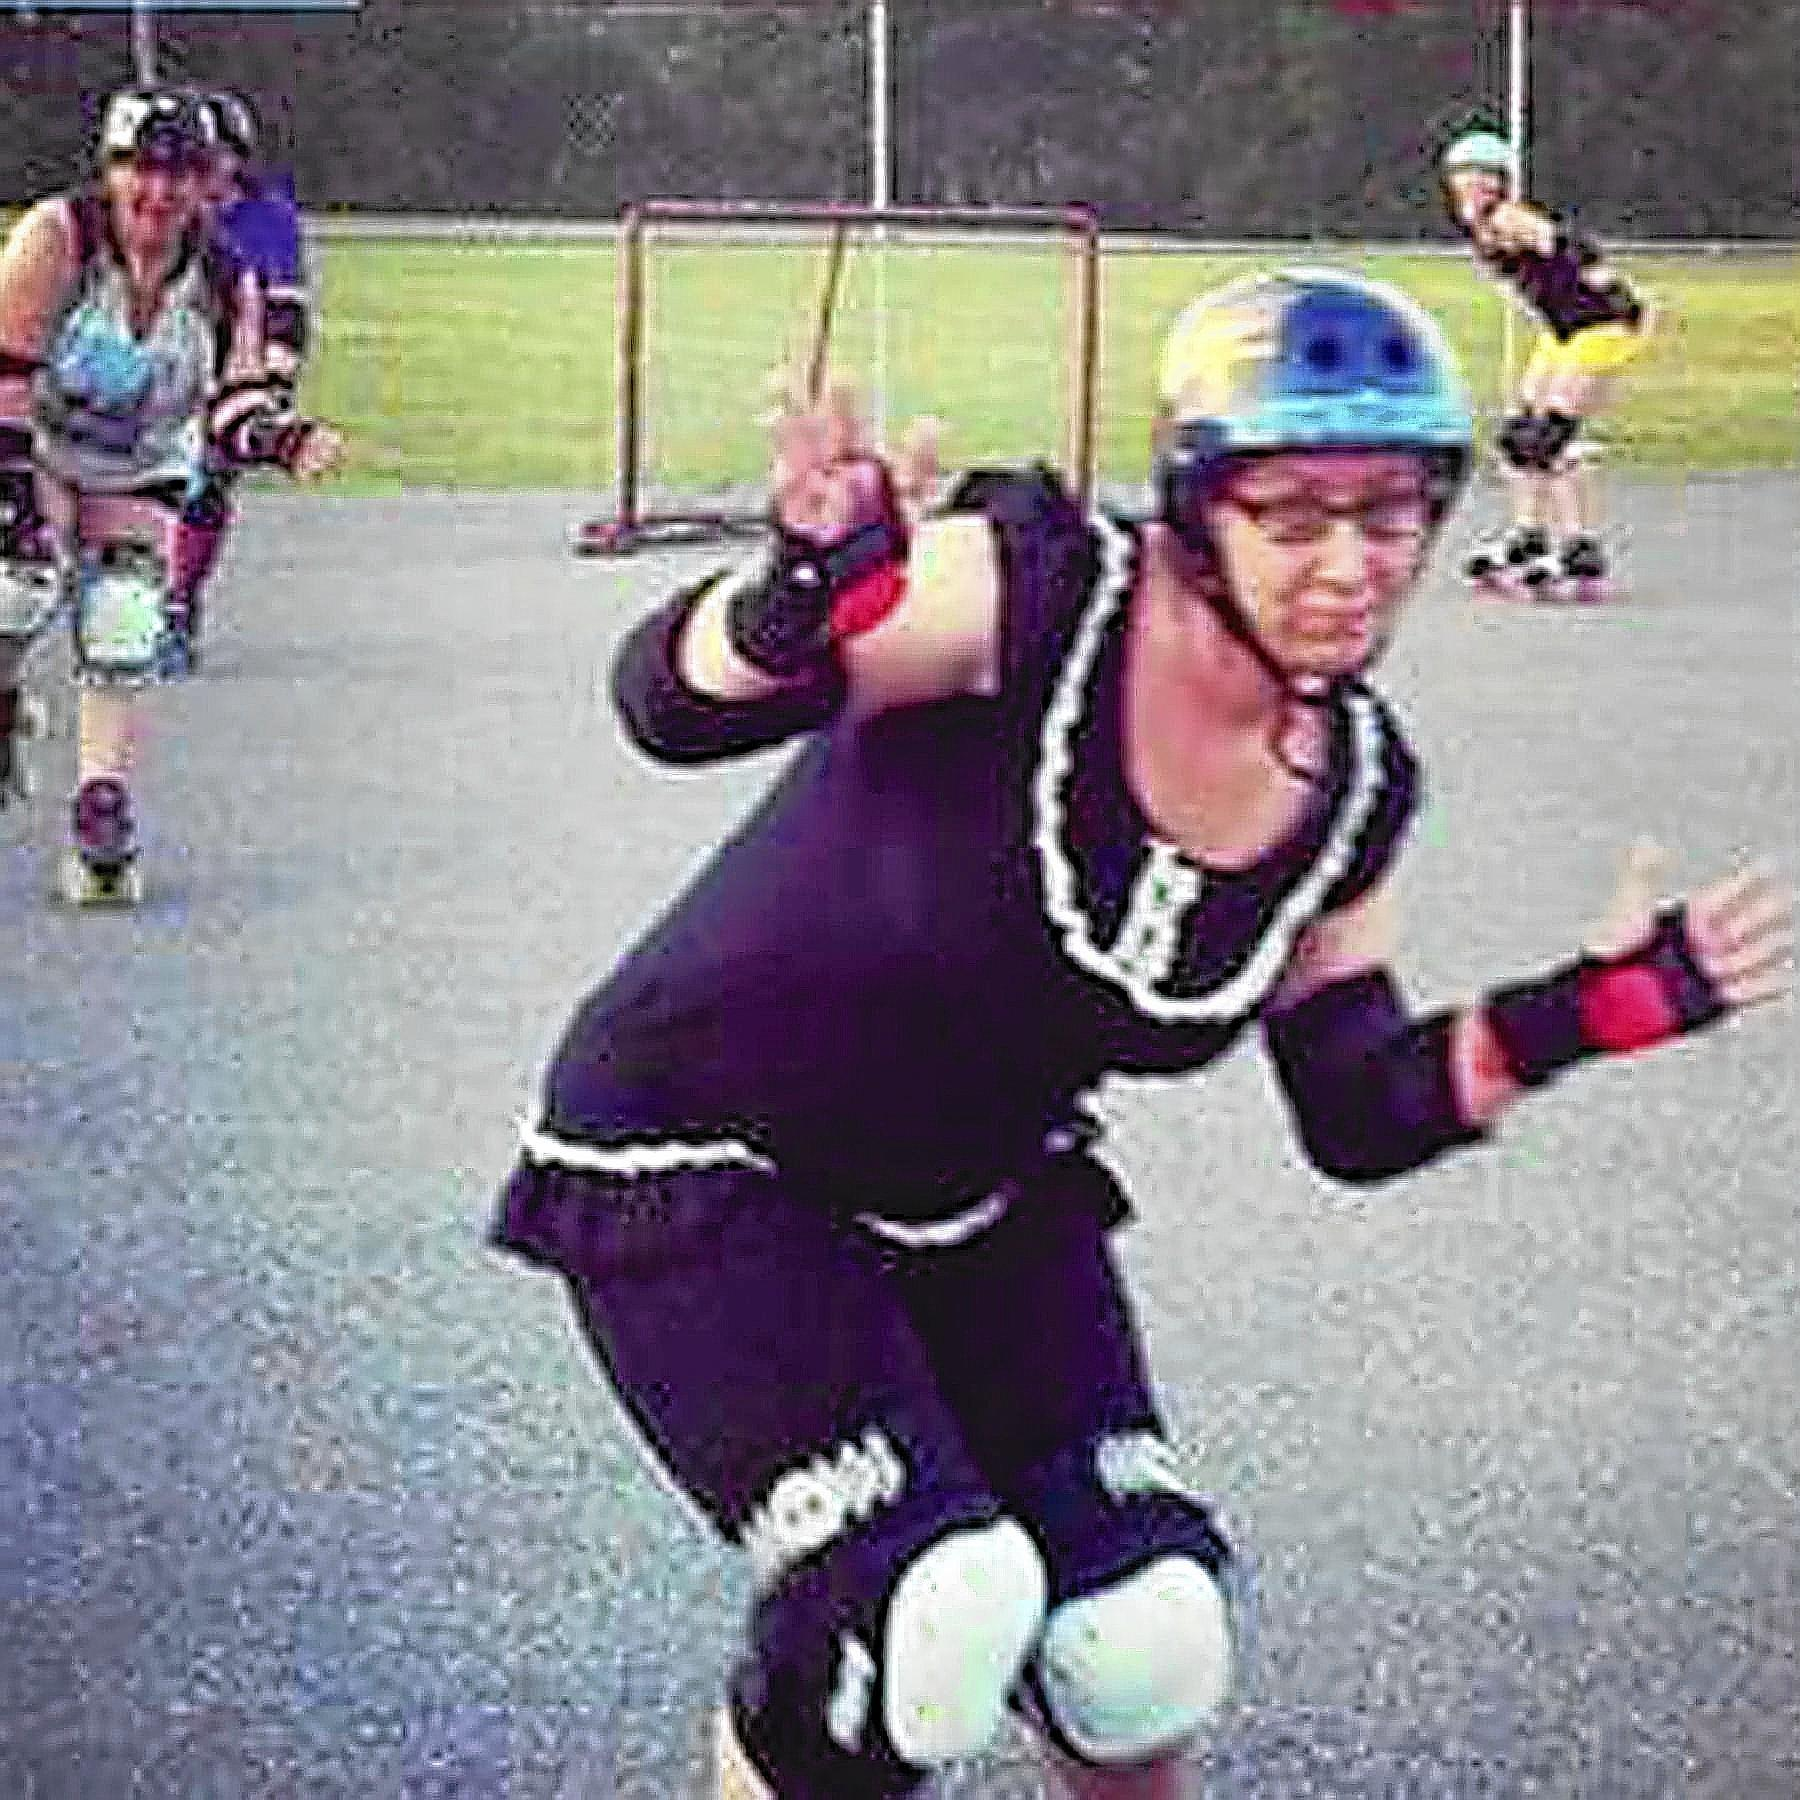 Beth Carson, a roller derby skater from Berks County, died of breast cancer in May. A fundraiser for her family called 'Brawl for Beth' will be held 8 p.m. Friday at the Earl E. Schaffer Municipal Ice Rink, 345 Illick's Mill Road, Bethlehem. Doors will open at 7 p.m.